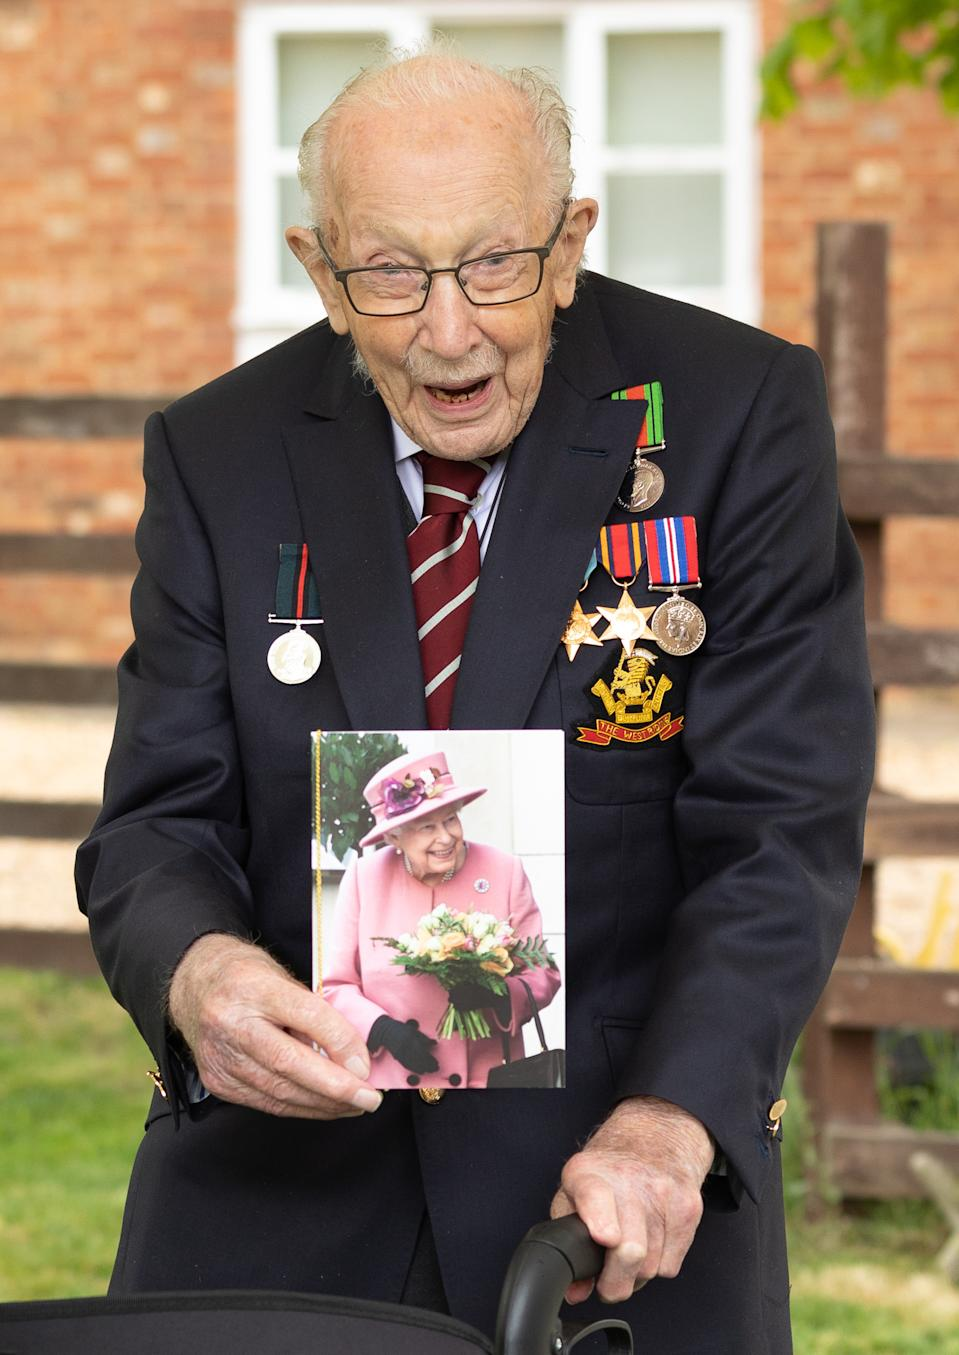 Handout photo of Second World War veteran Captain Tom Moore holding a birthday card from Queen Elizabeth II as he celebrates his 100th birthday.